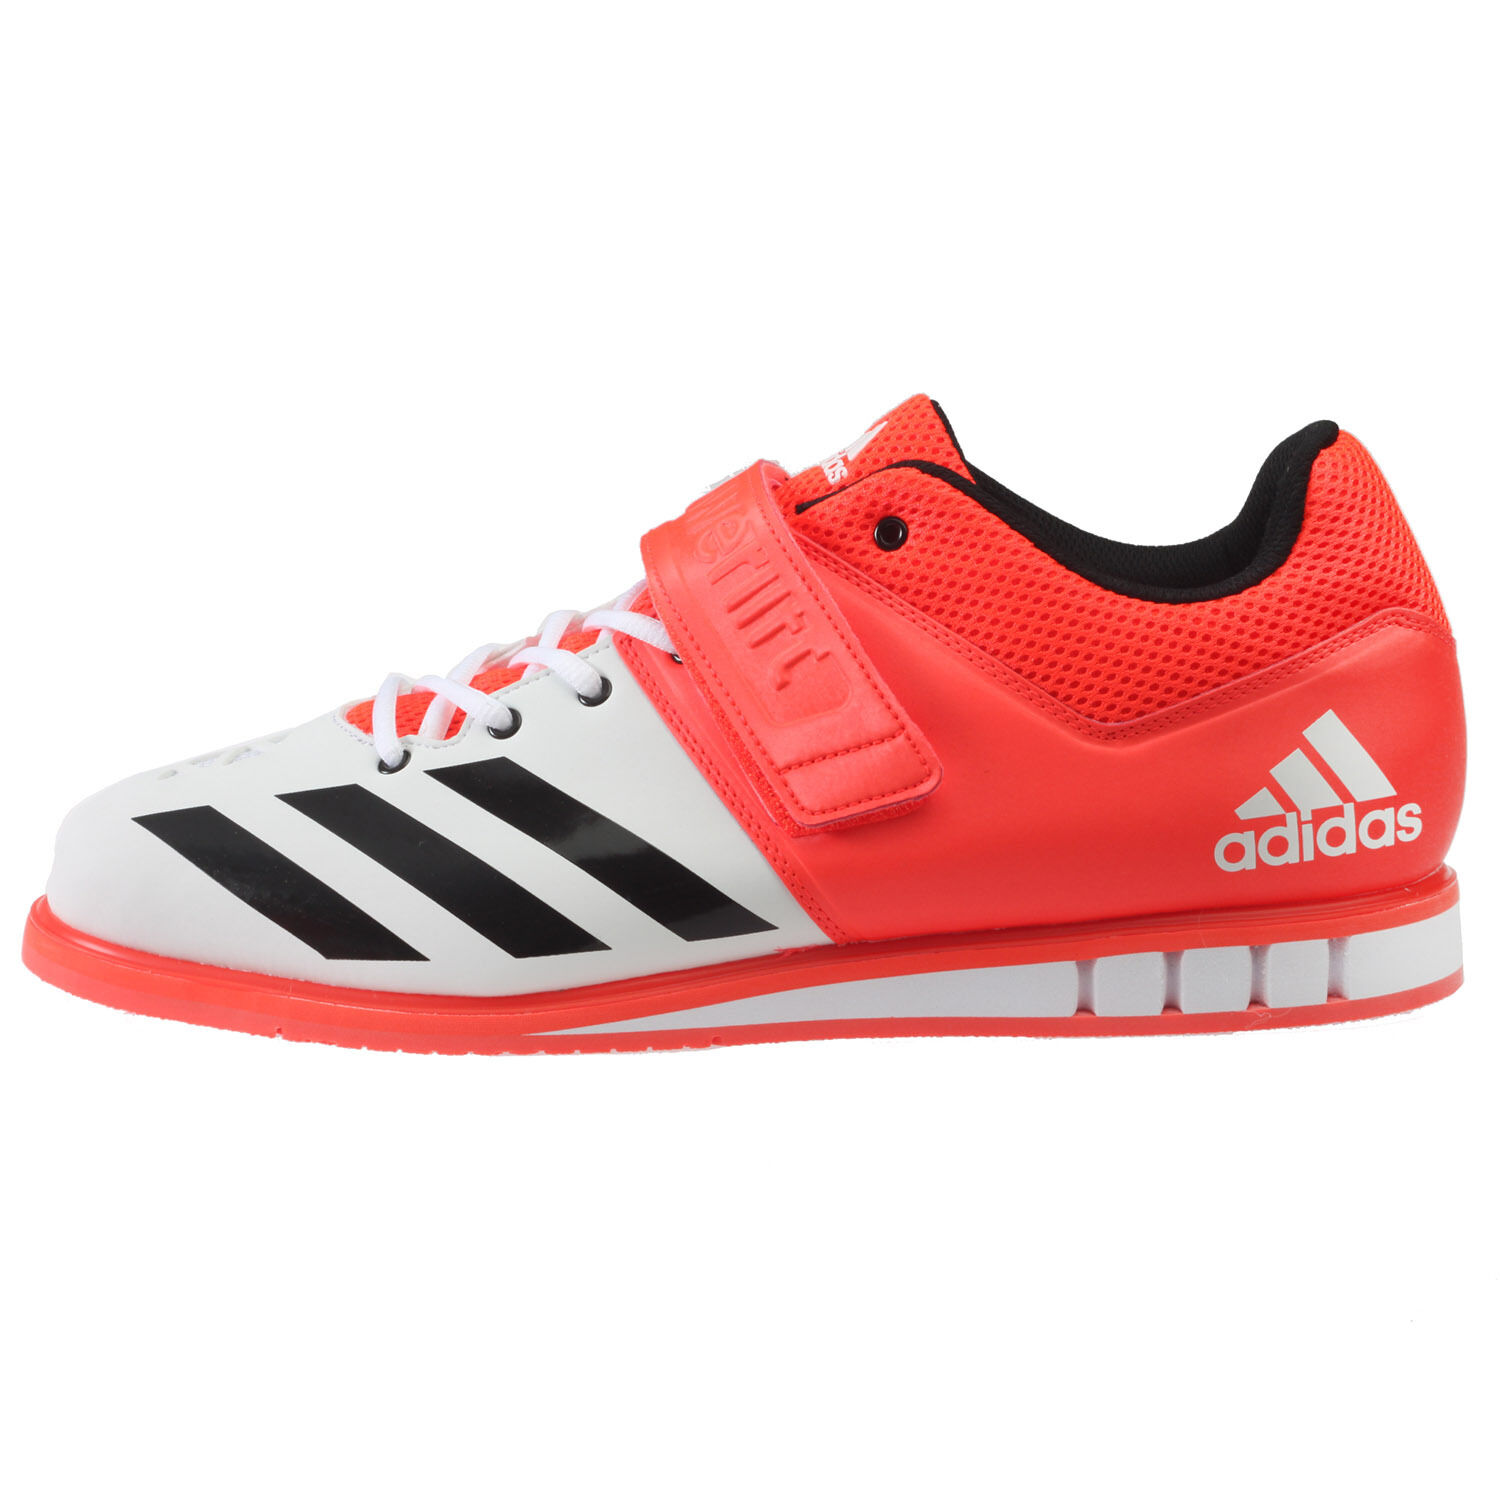 Adidas Powerlift 3 Mens AQ3328 Solar Red Weightlifting Training Shoes Size 16